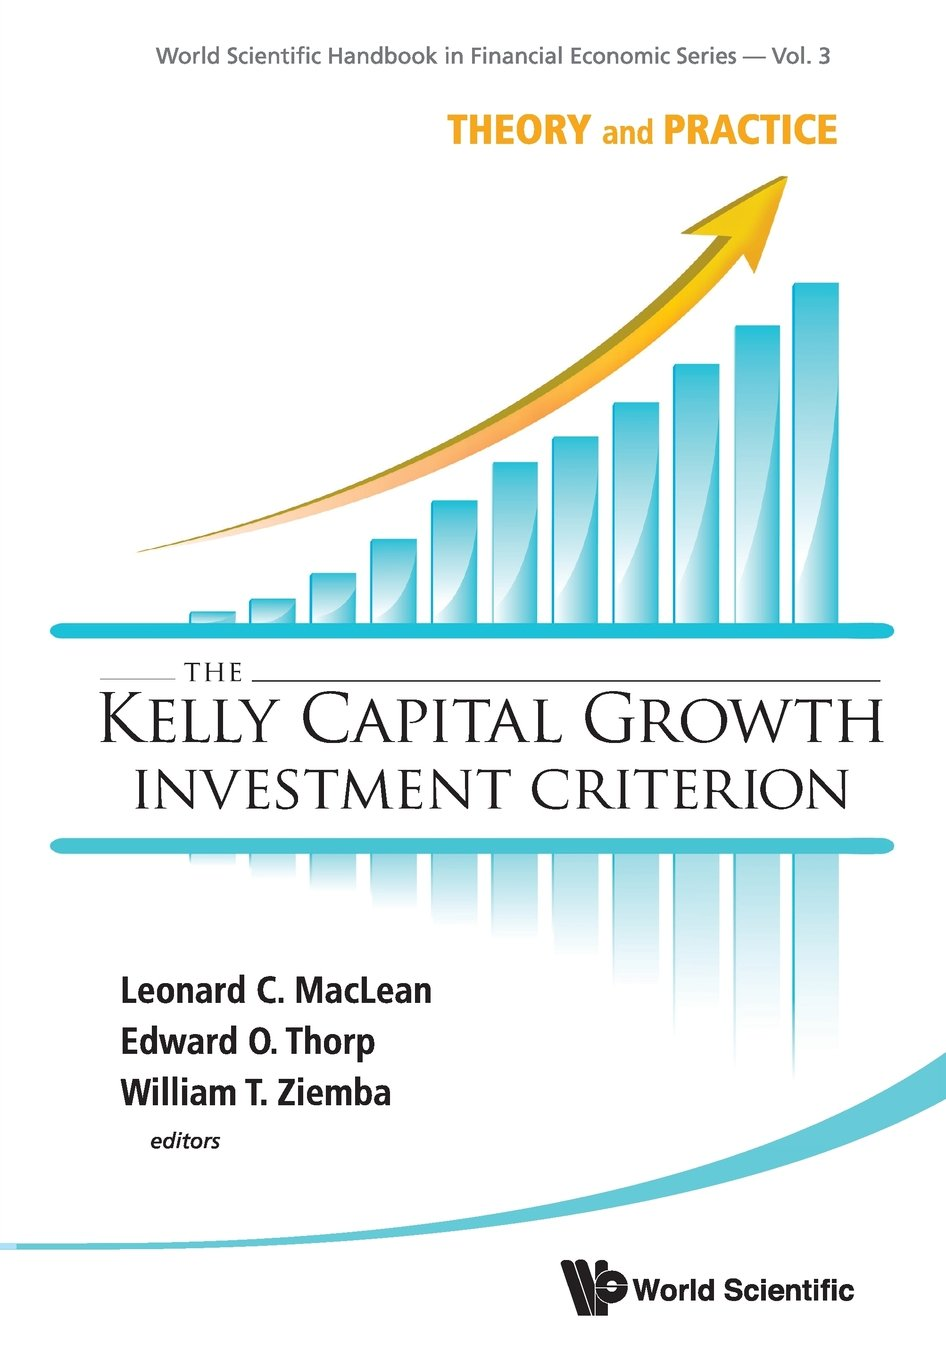 The Kelly Capital Growth Investment Criterion: Theory and Practice (World Scientific Handbook in Financial Economics)